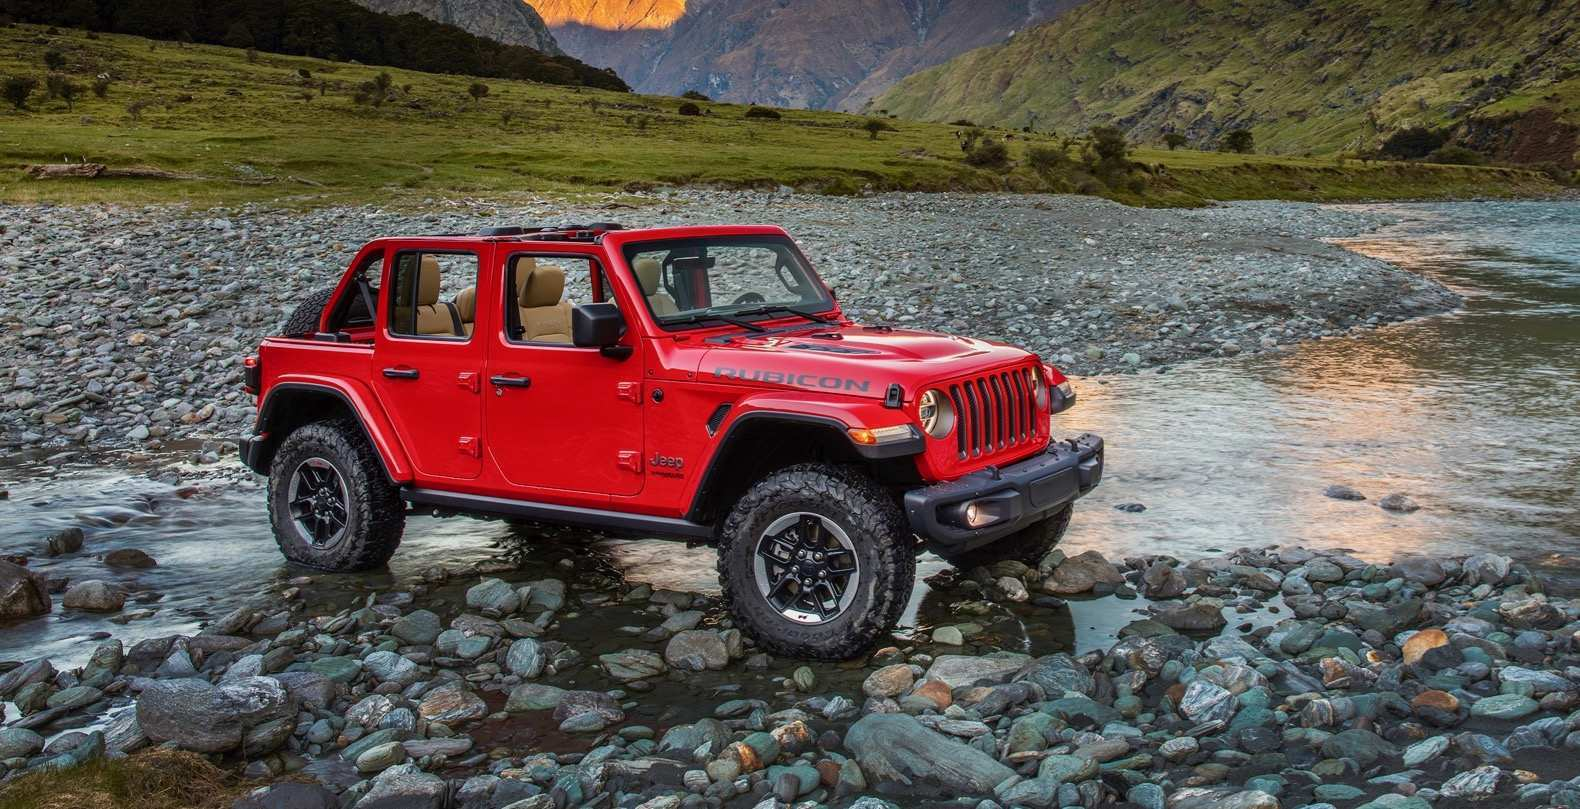 96 Best Review 2019 Jeep Wrangler Auto Show Spesification with 2019 Jeep Wrangler Auto Show